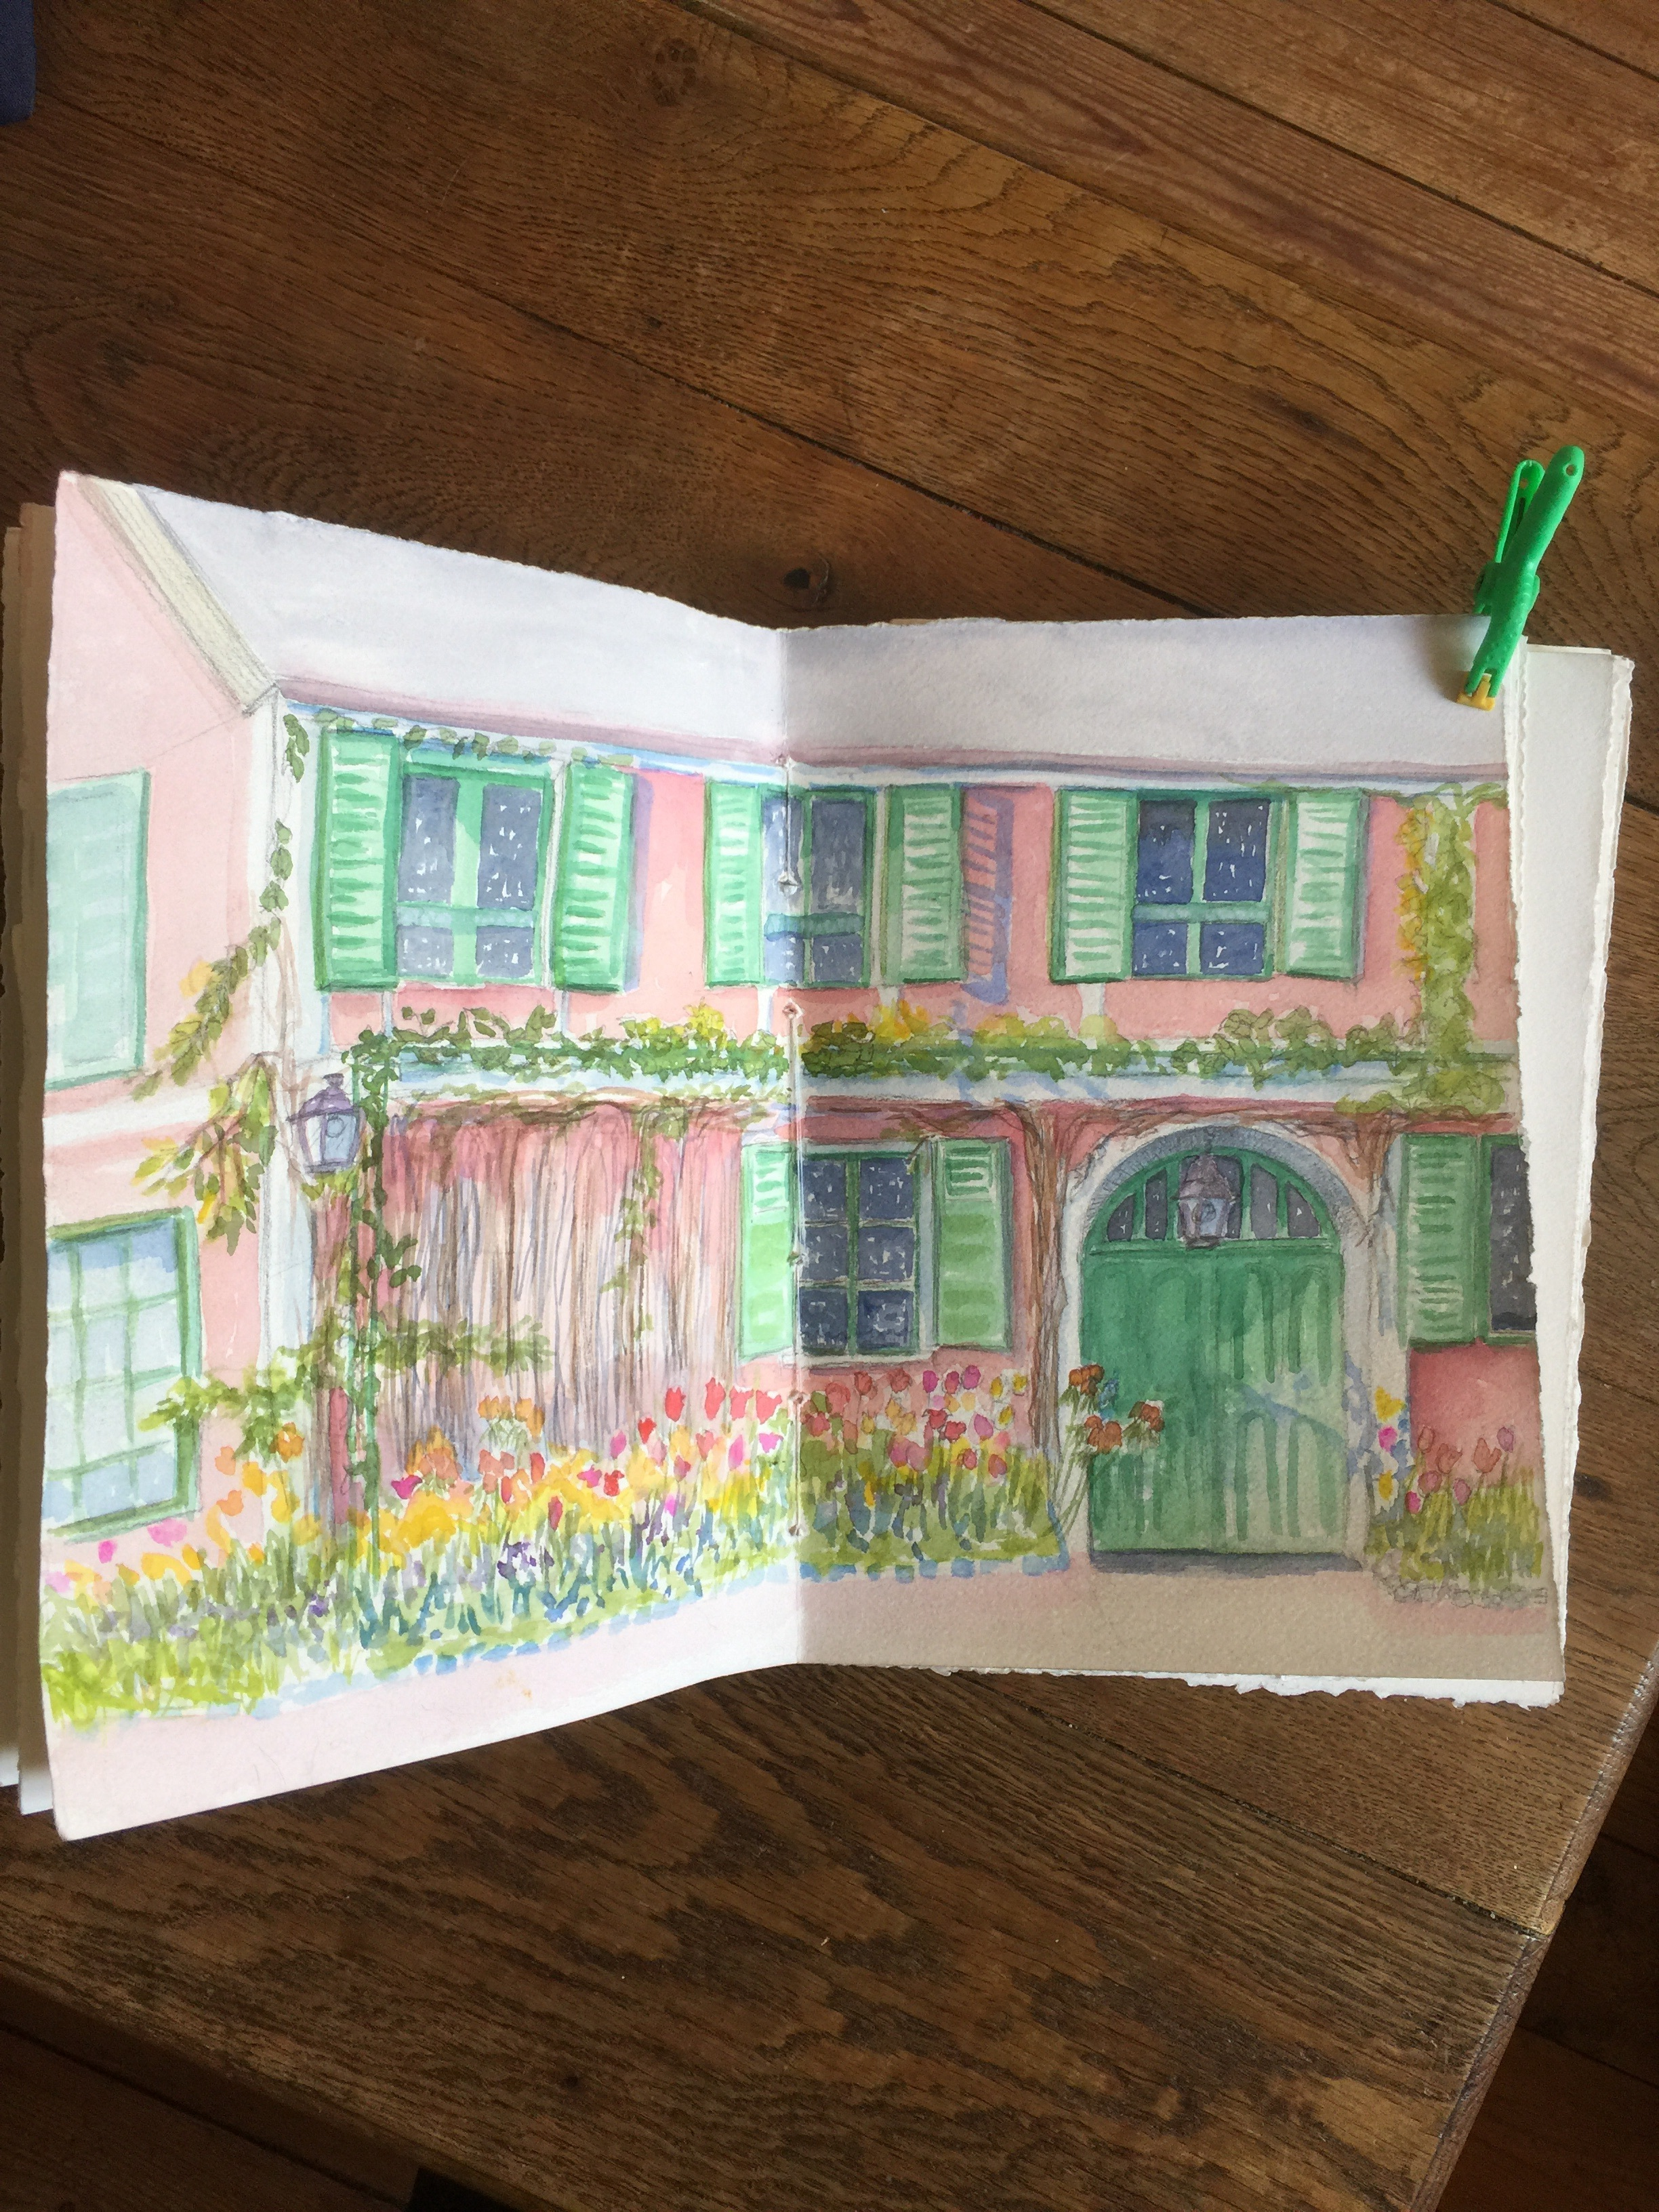 My attempt to capture Monet's home in my watercolor journal.